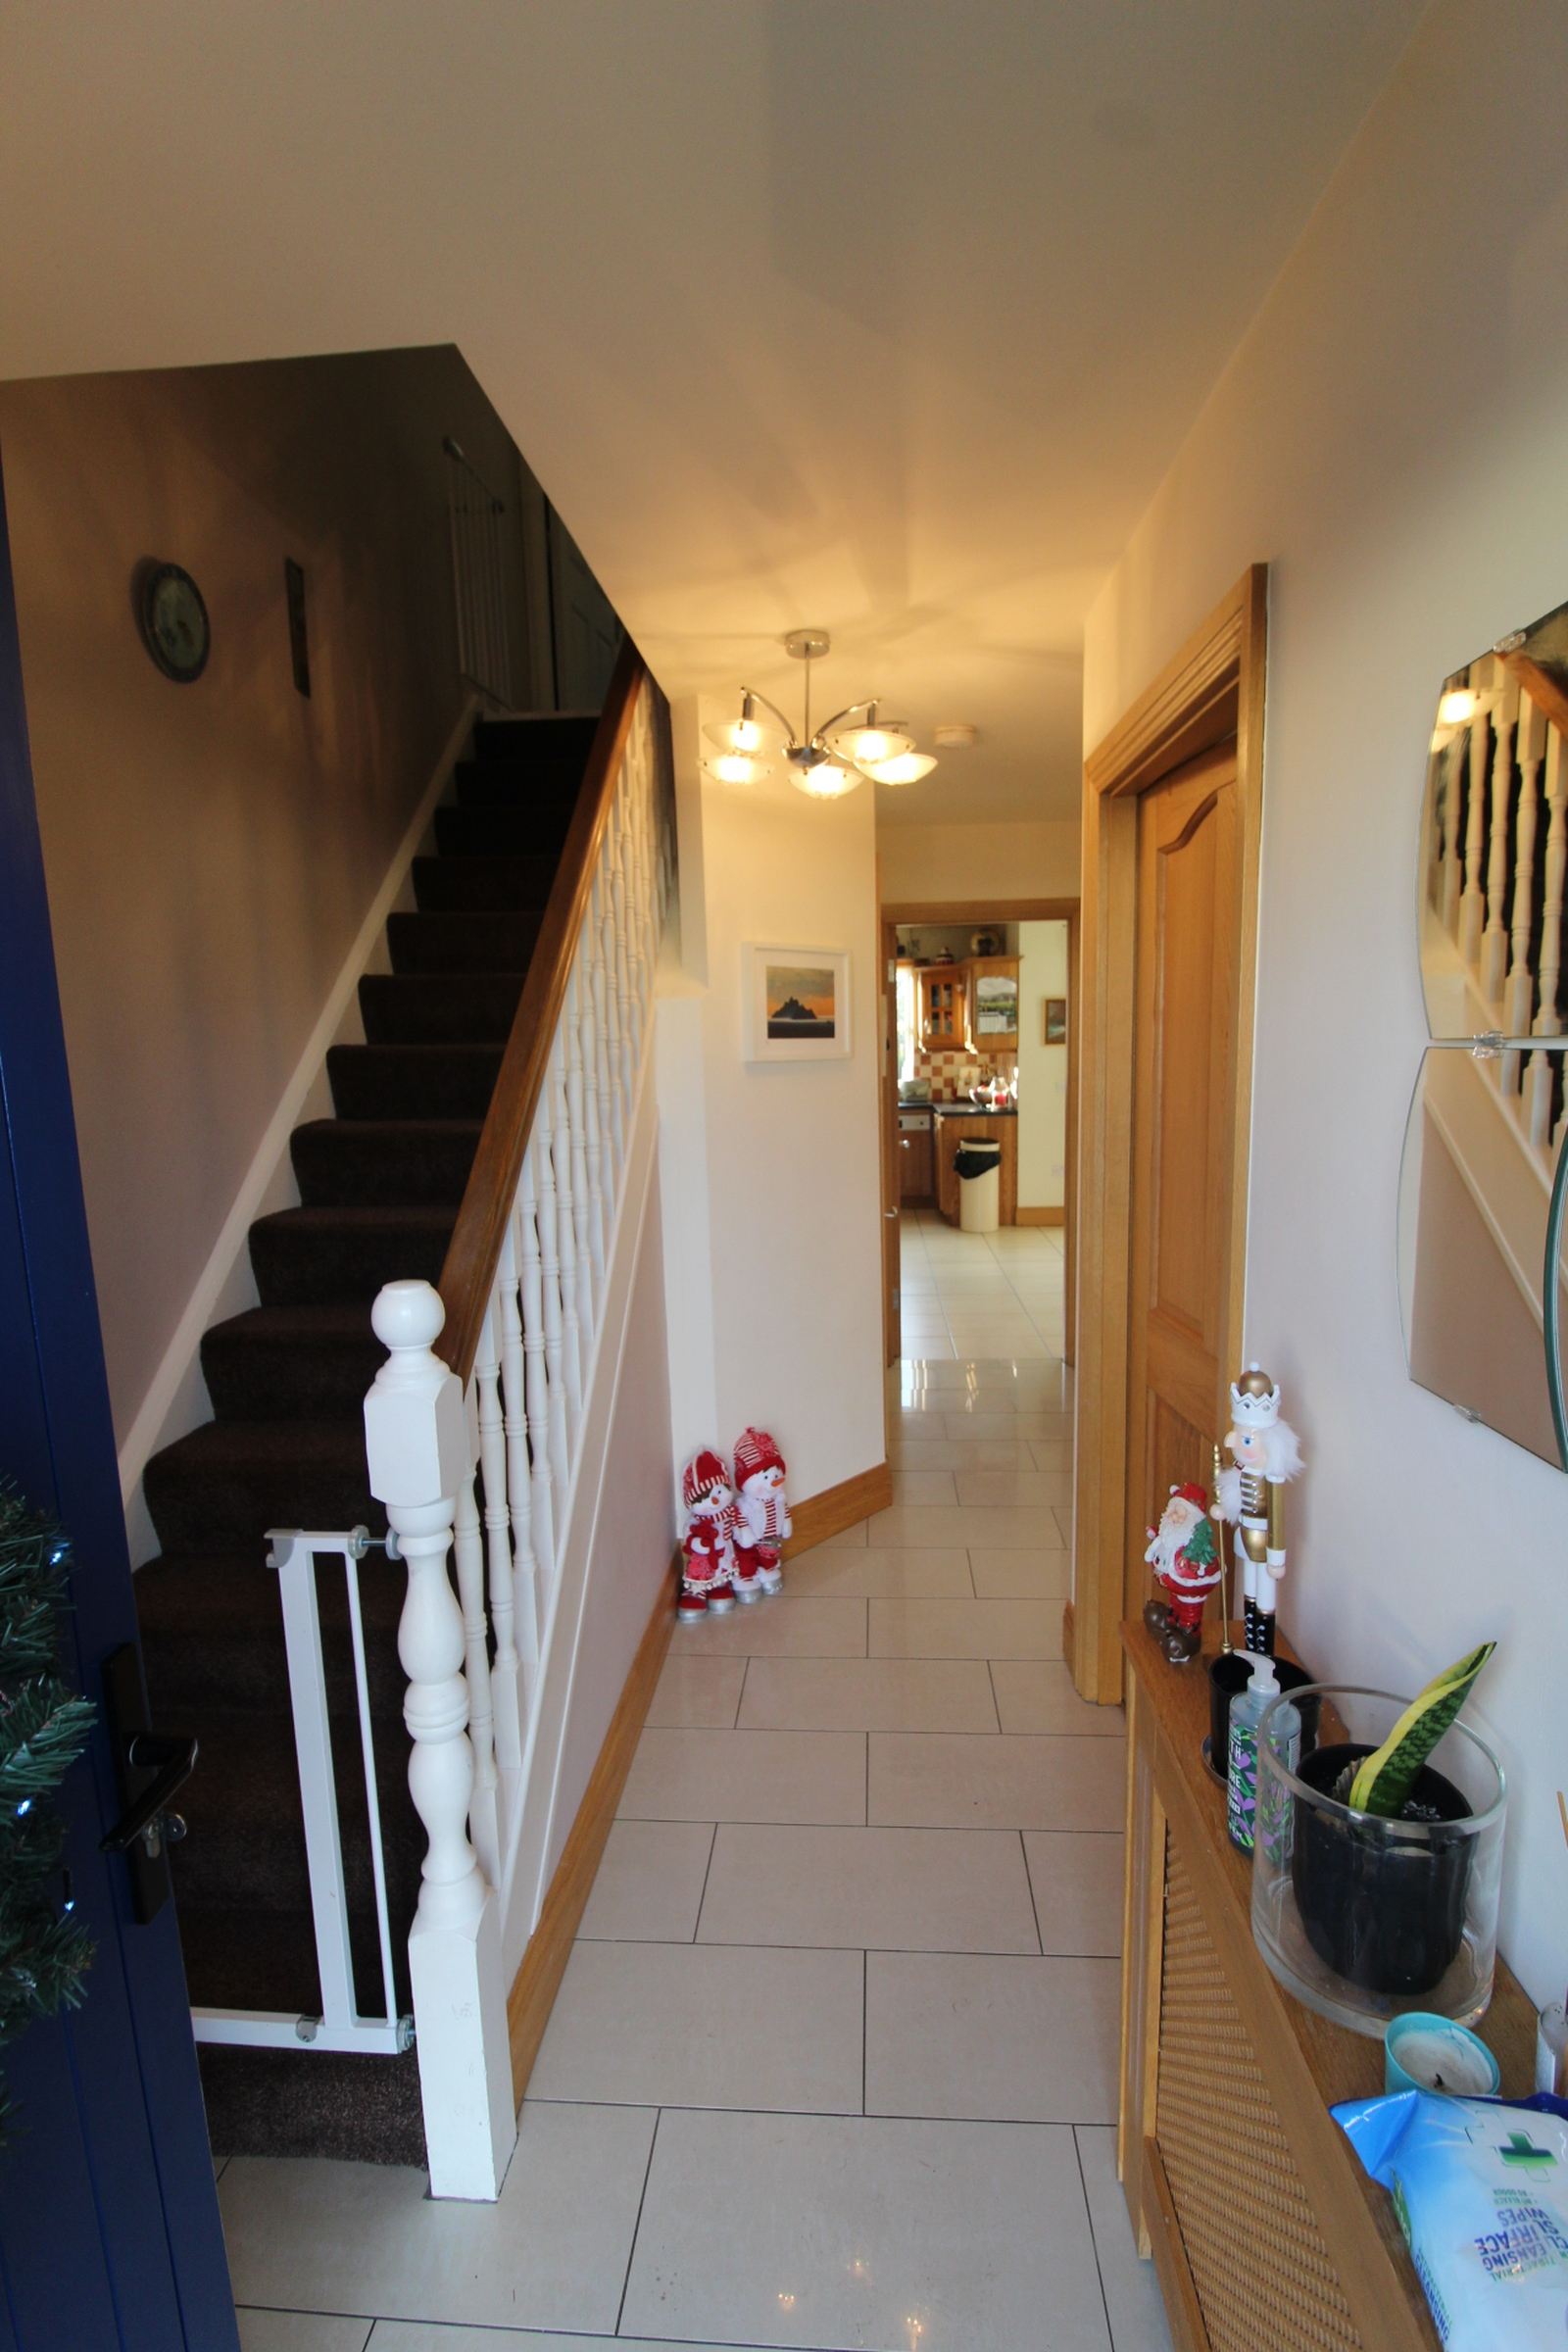 18 Cois Tobair, Dromahane, Co. Cork